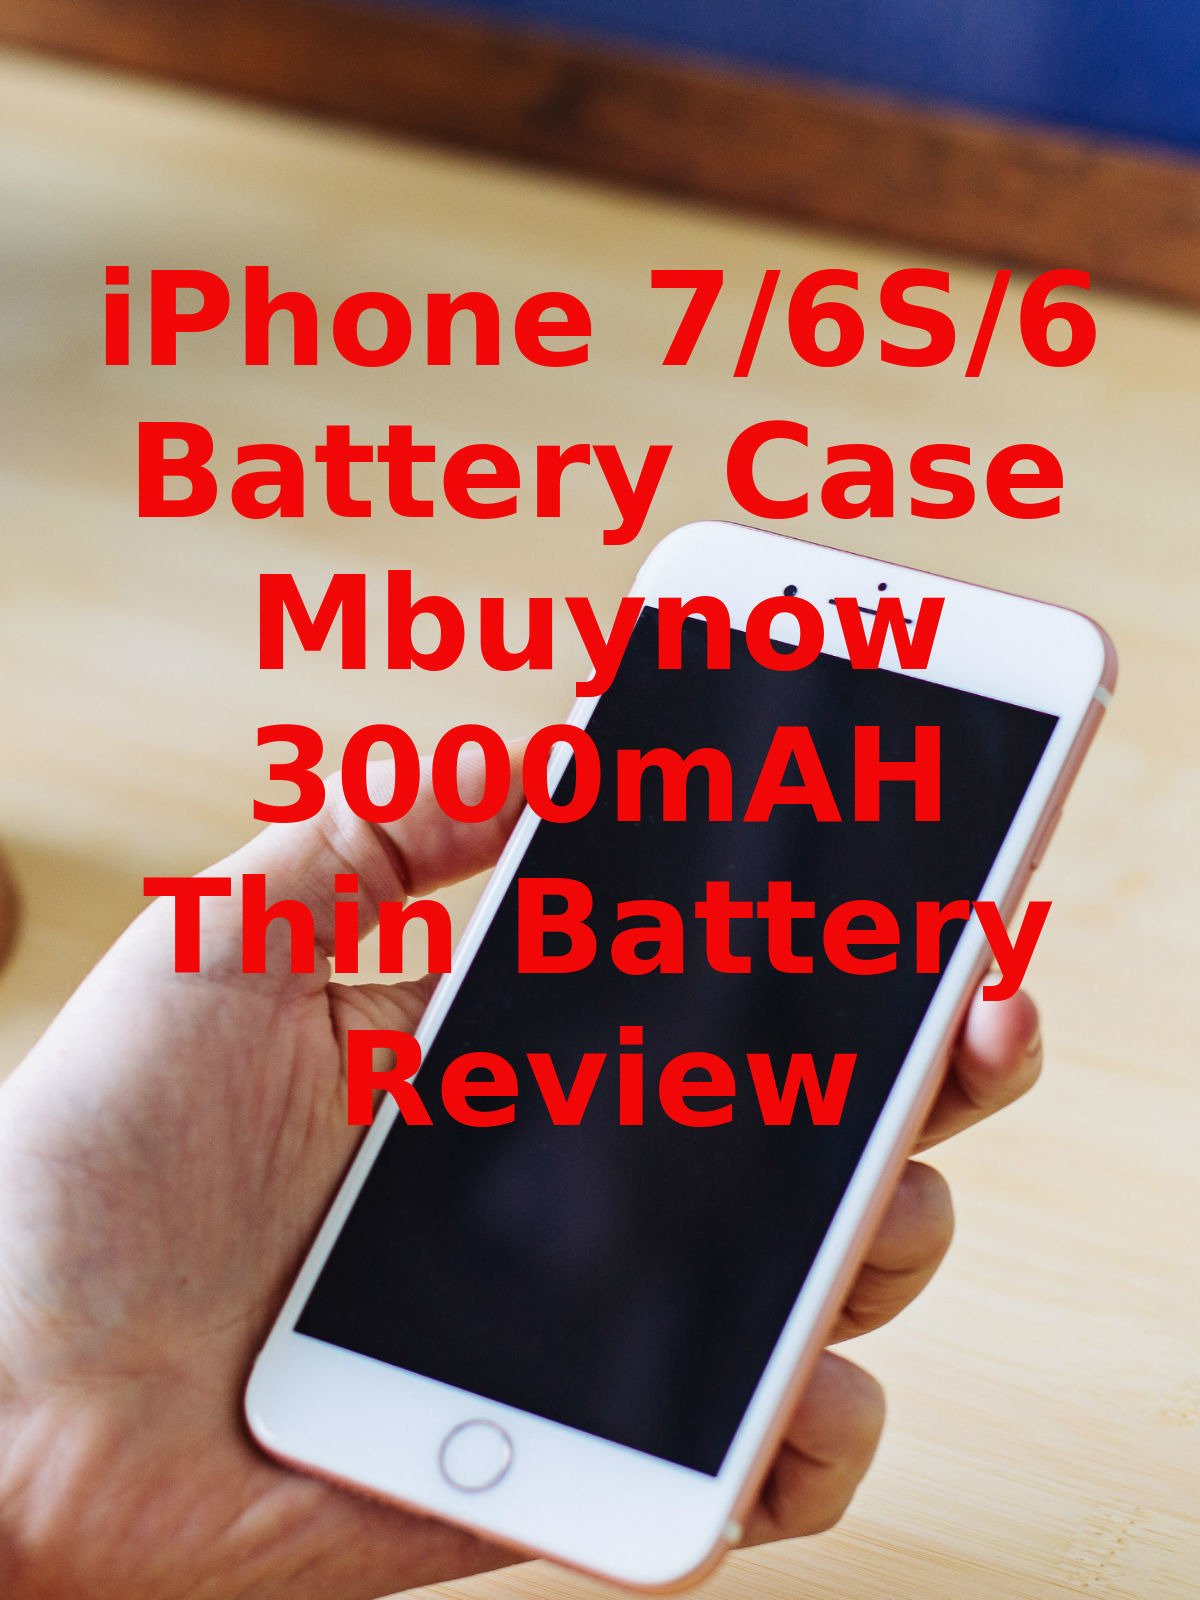 Review: iPhone 7/6S/6 Battery Case Mbuynow 3000mAH Thin Battery Review